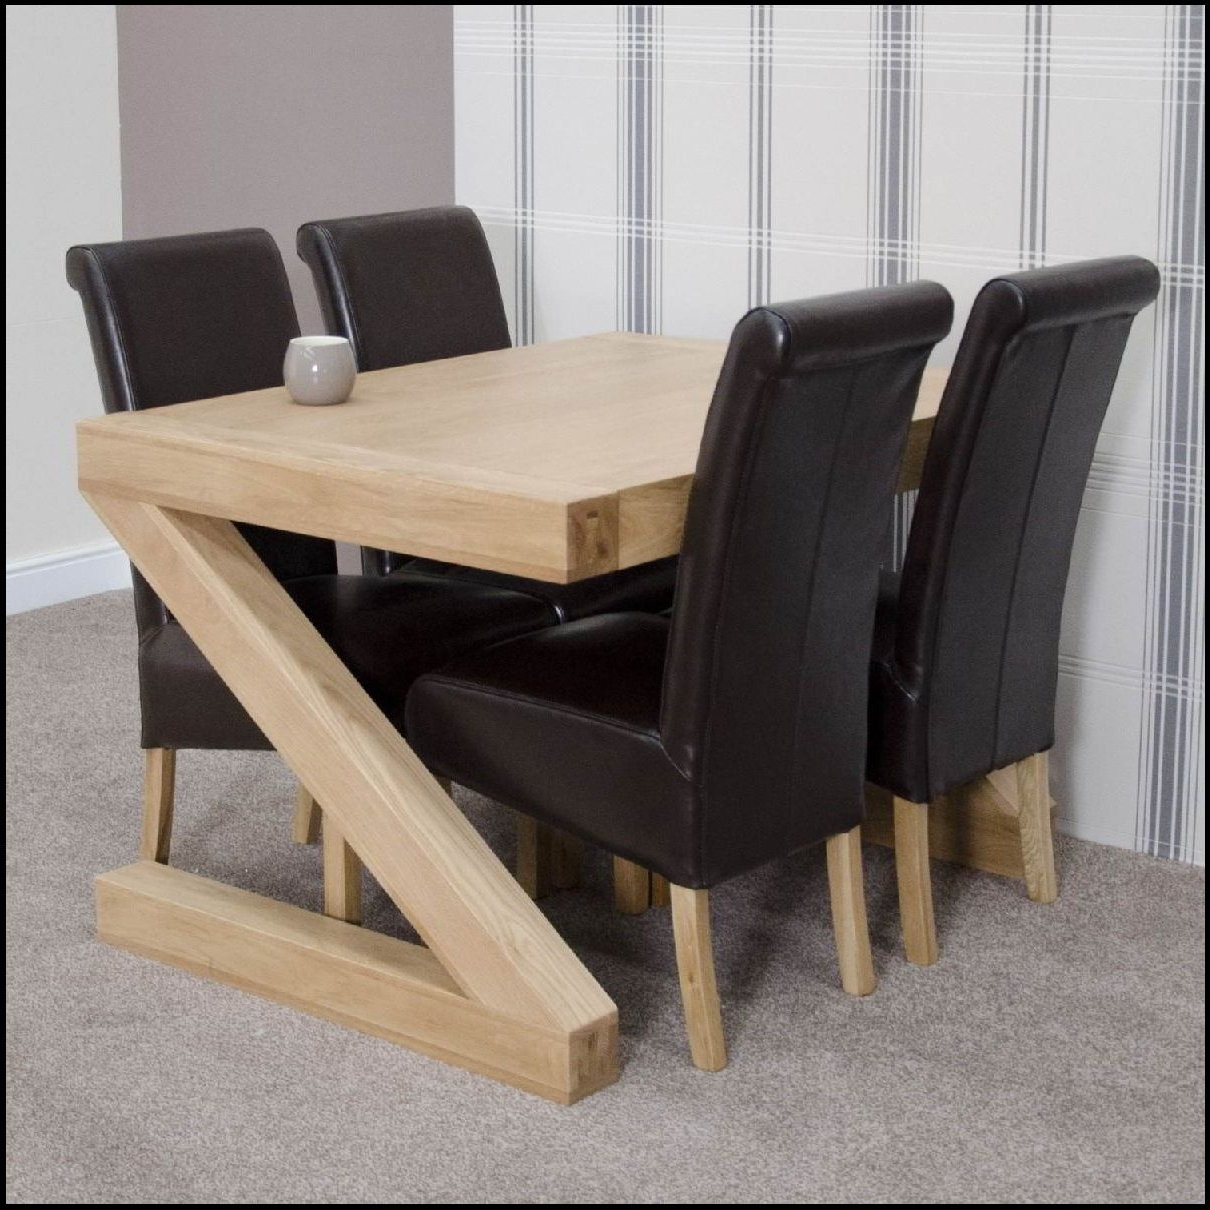 Famous Amazing Oak Dining Table 4 Chairs Tanner Furniture Designs With In Oak Dining Tables And 4 Chairs (View 7 of 25)